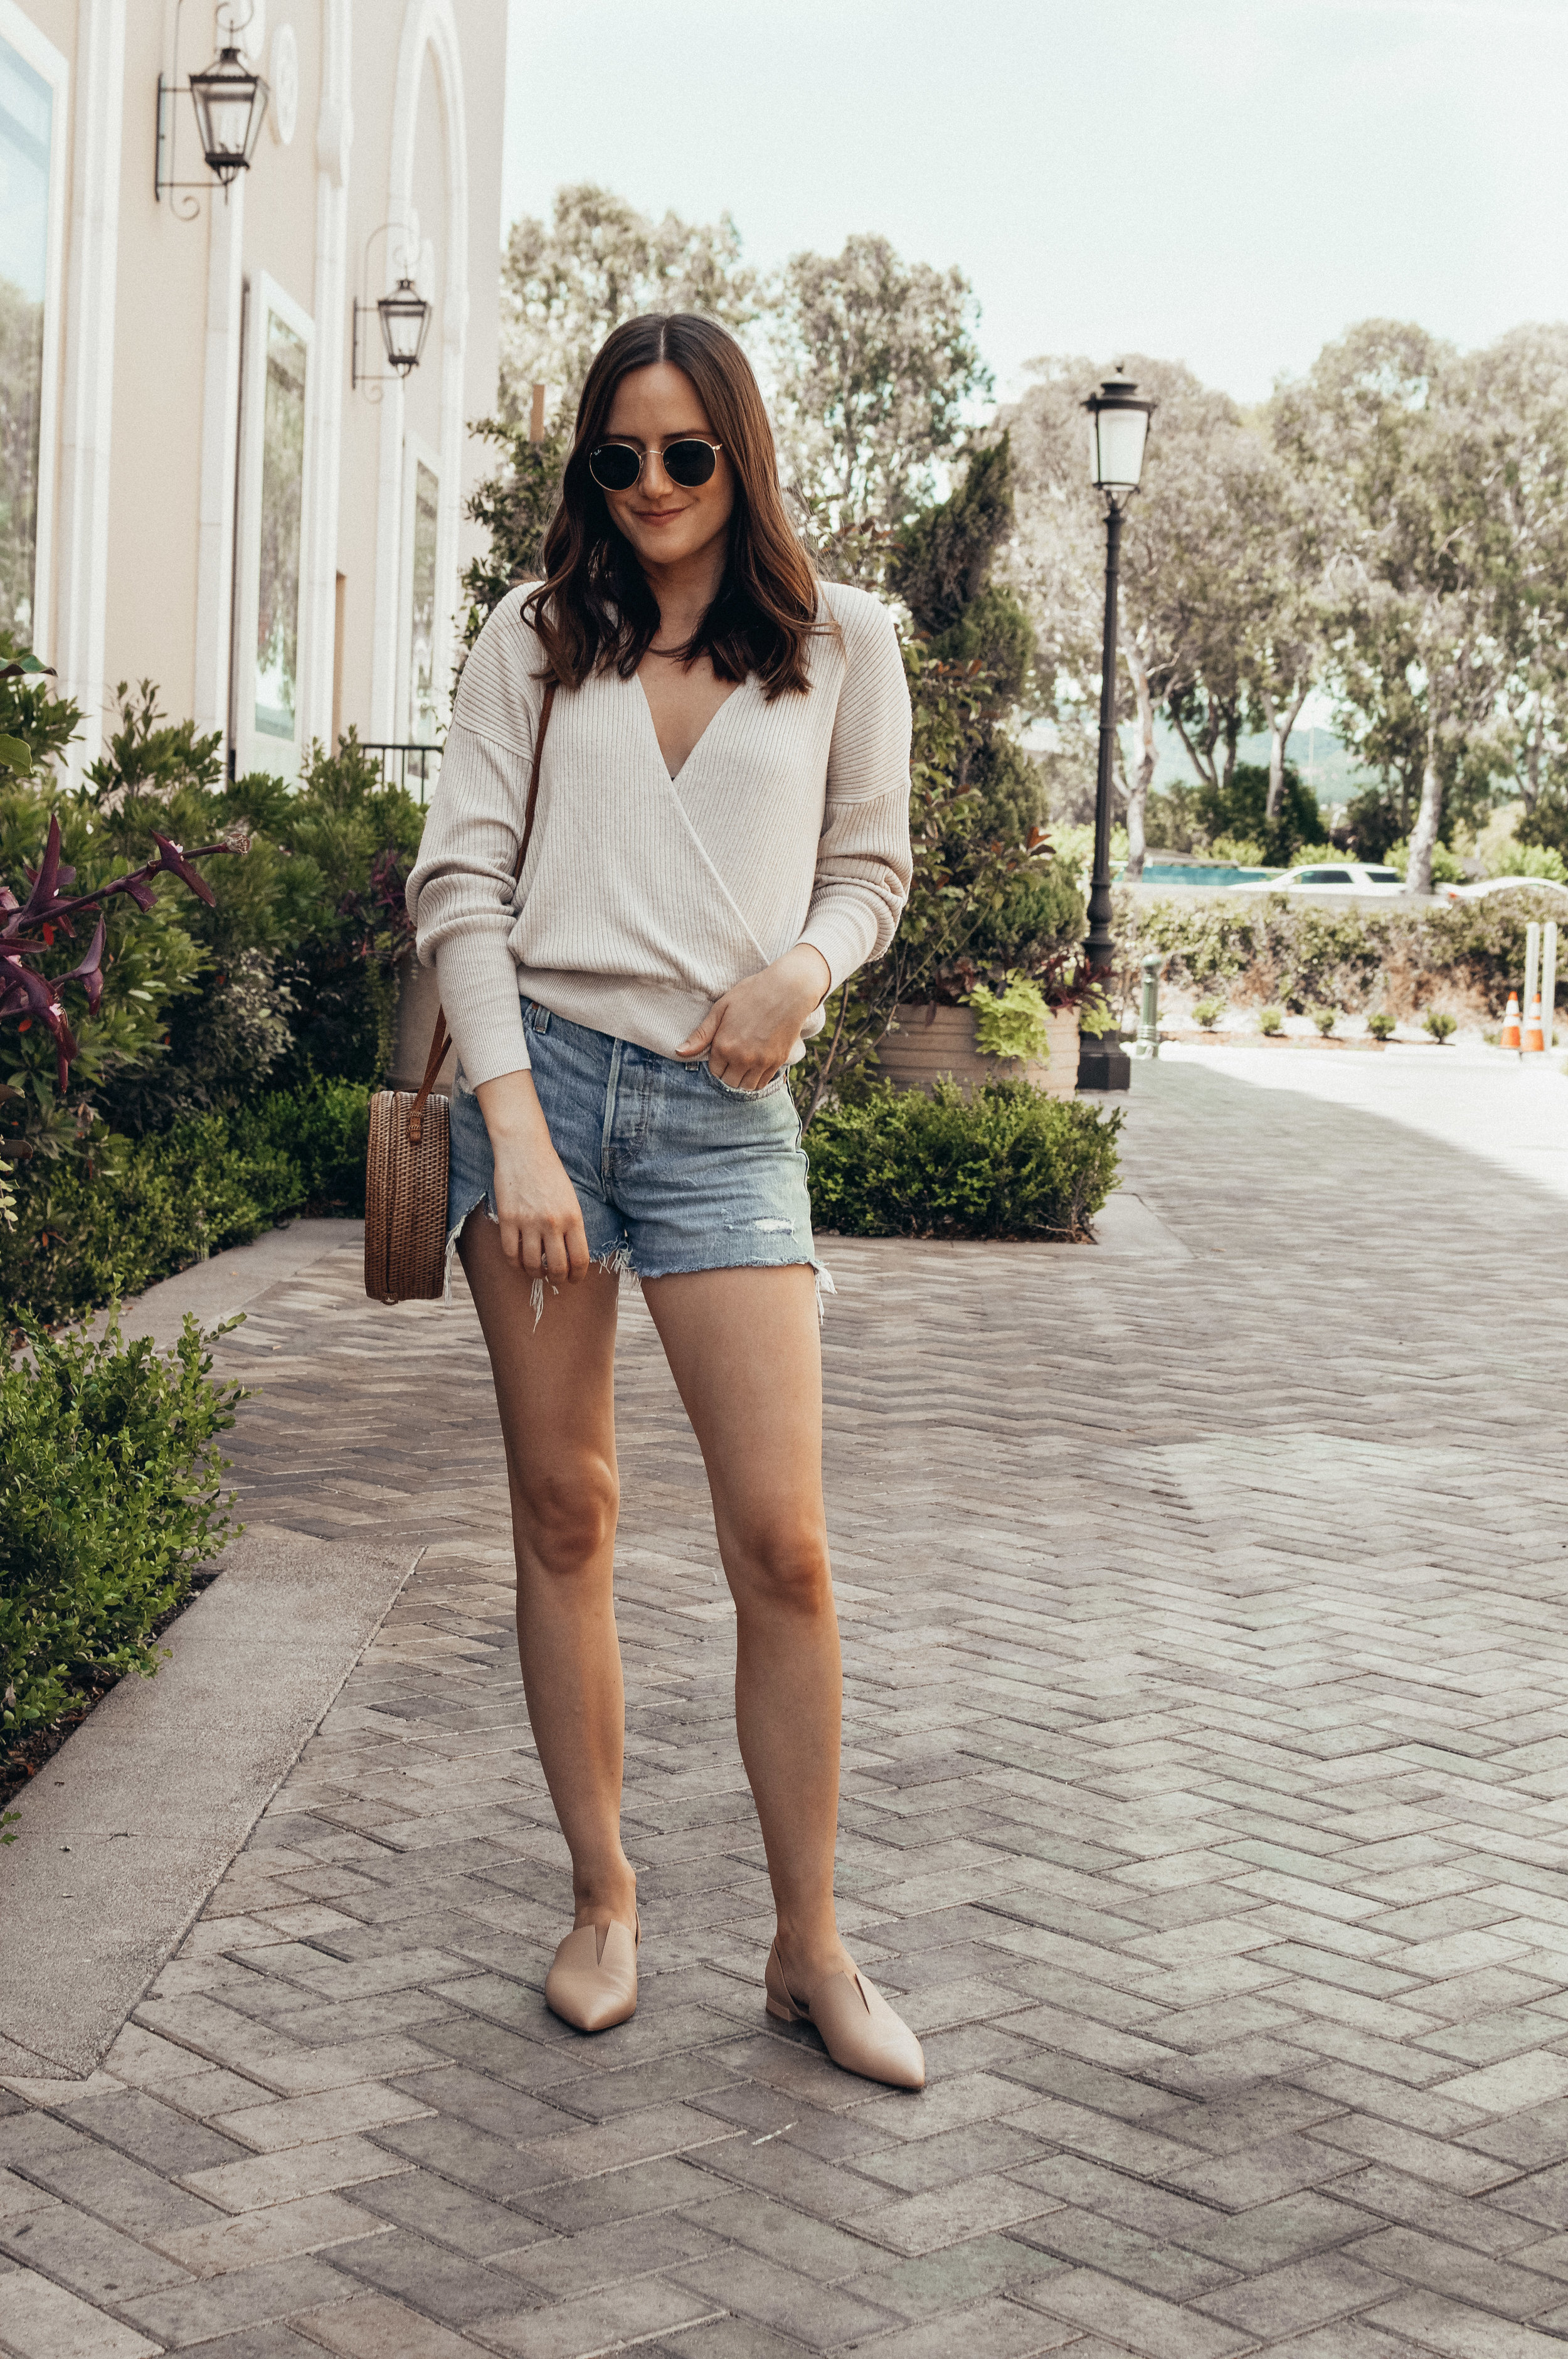 Outfit Details:  Leith Faux Wrap Sweater  |  Levi's Shorts  |  Vince Flats  |  Kinilush Bag  |  Ray-Ban Sunglasses  |  Madewell Circle Ring